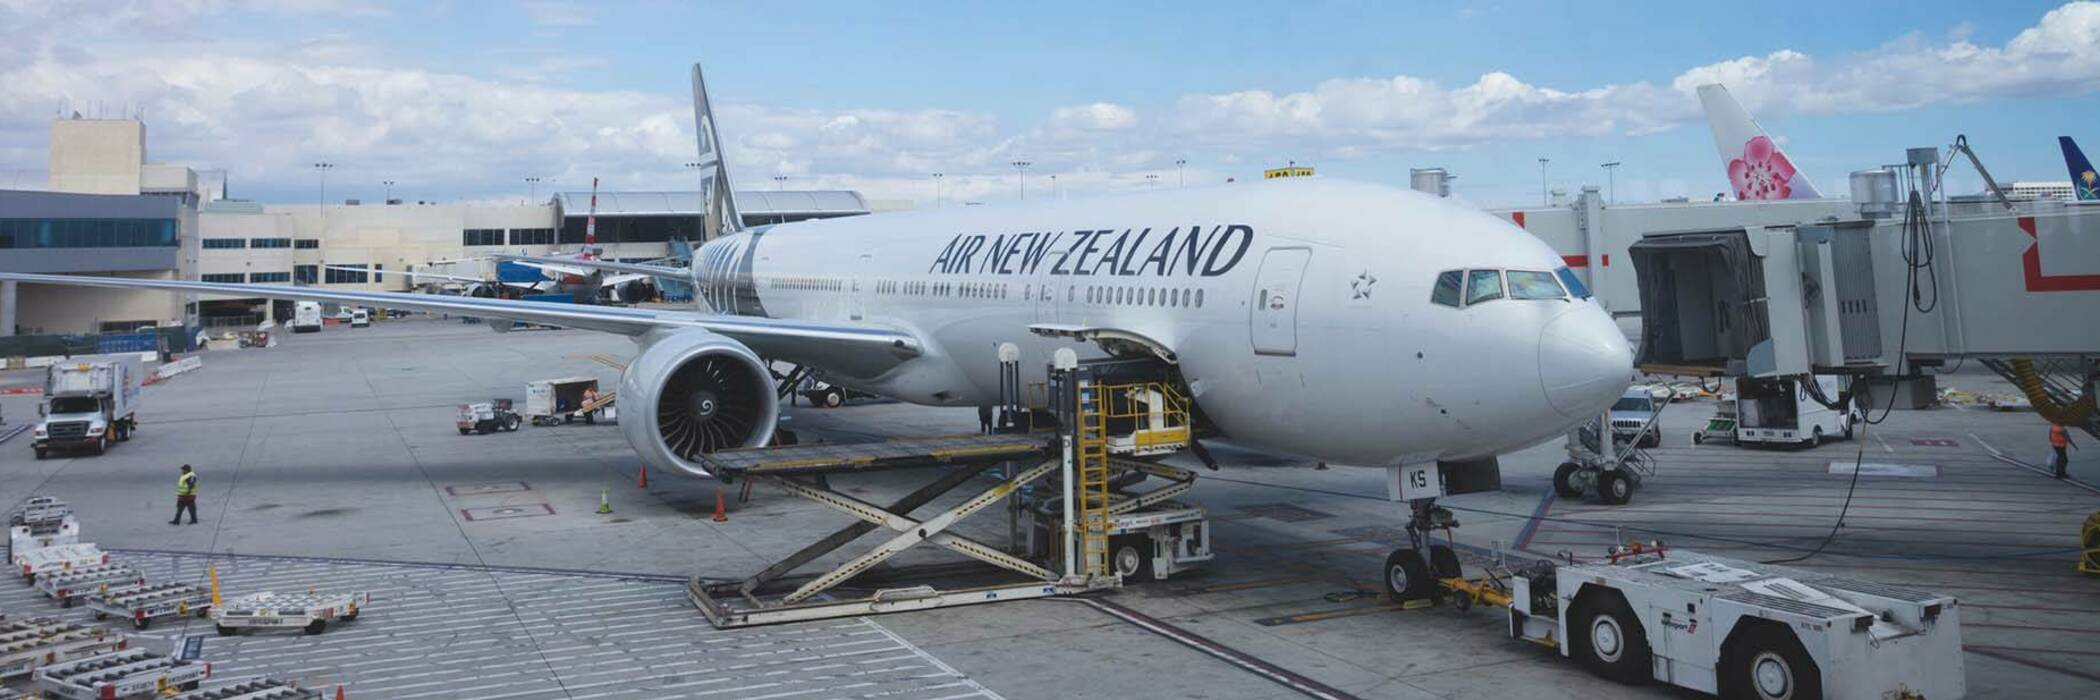 20may air nz refunds hero